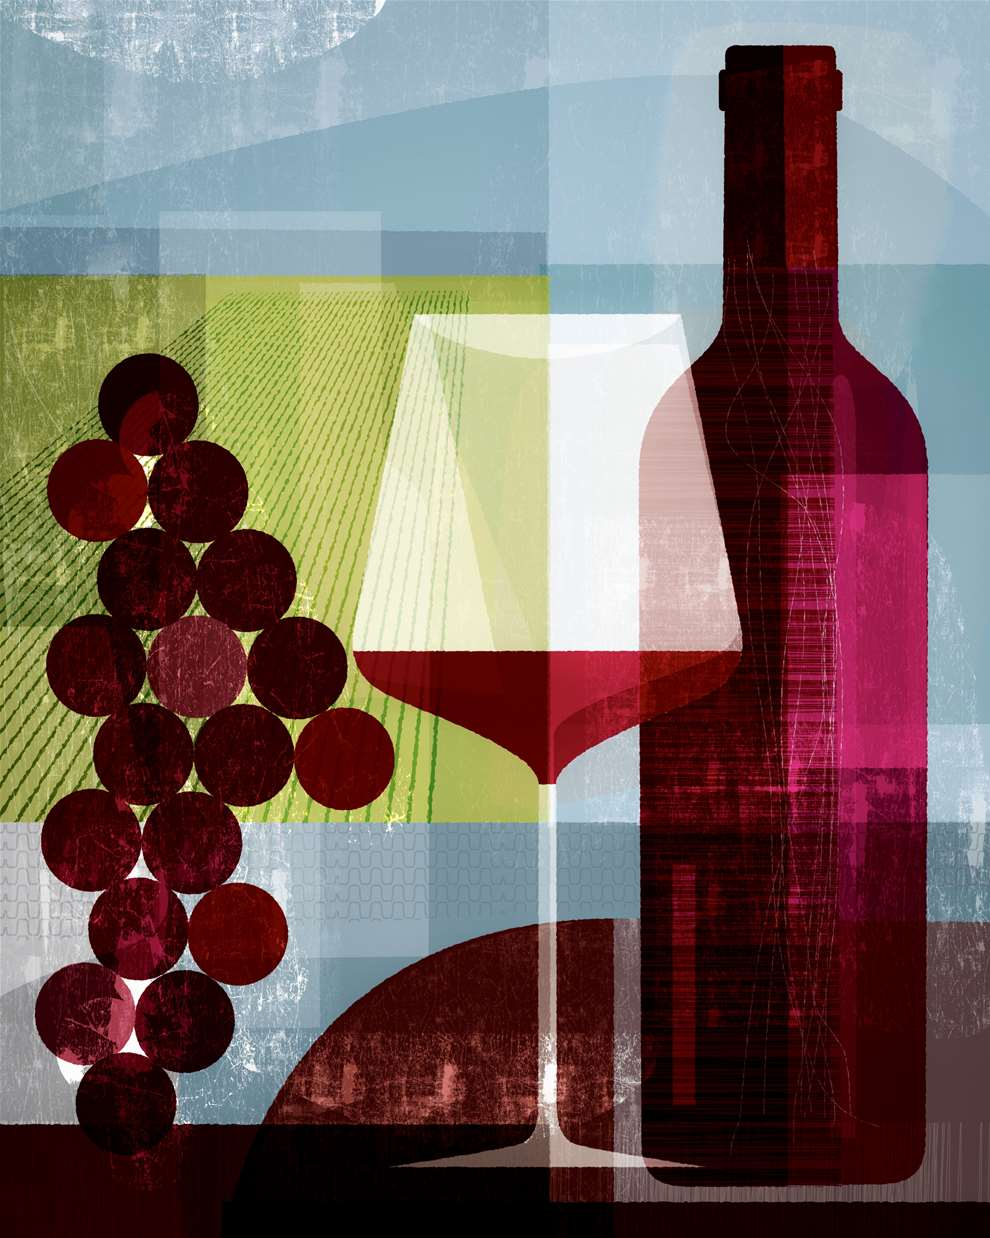 Paul Wearing, Paul Wearing Digital,  Layered,  Textural Illustration of Red Wine Bottle, Wine Glass and Grapes.